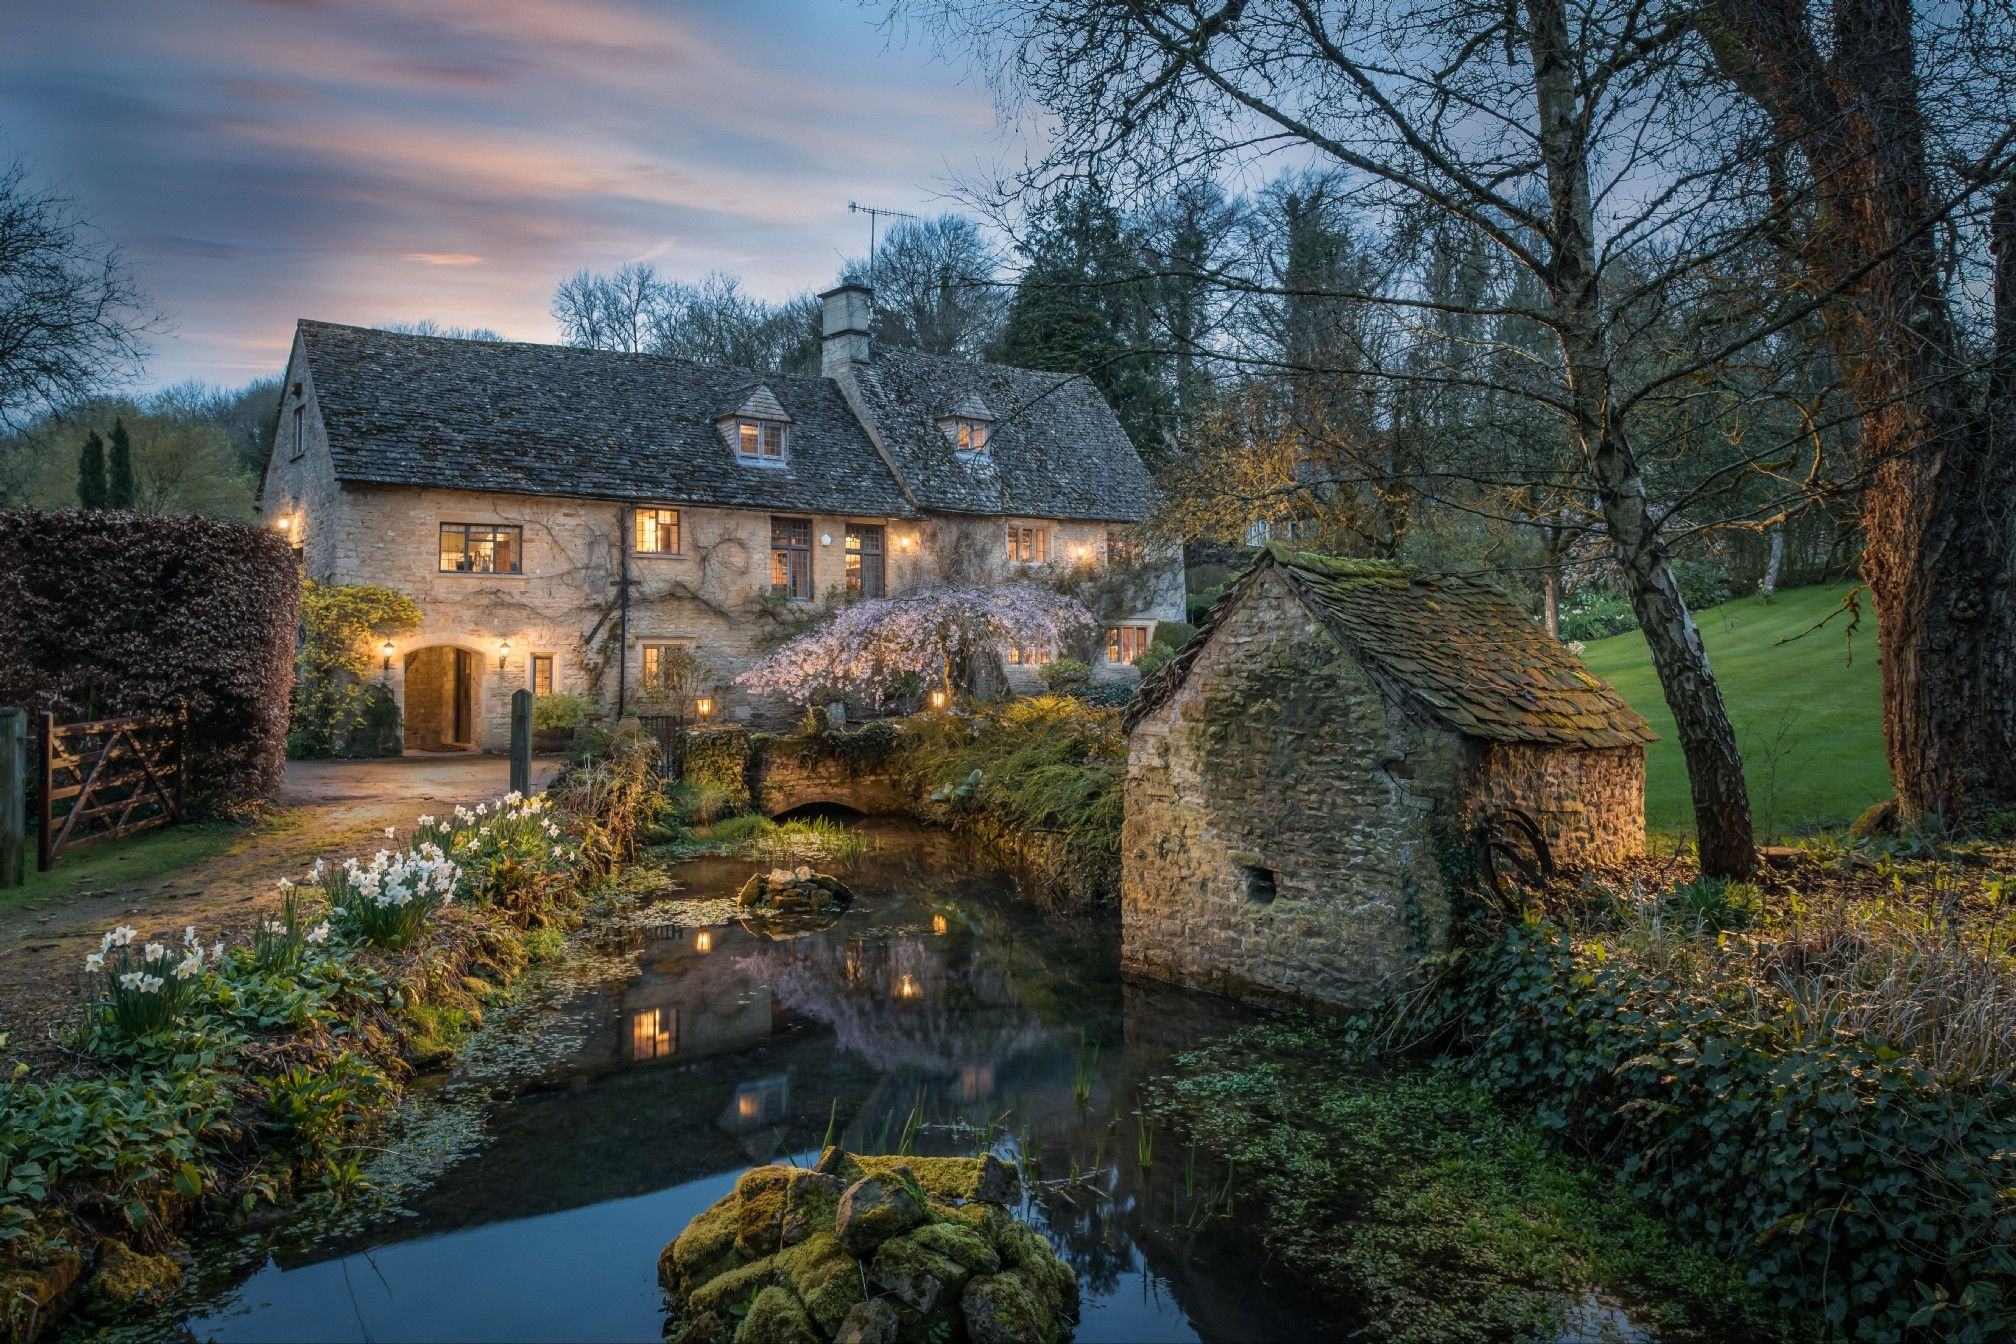 This magical Cotswolds millhouse calls you to run wild in